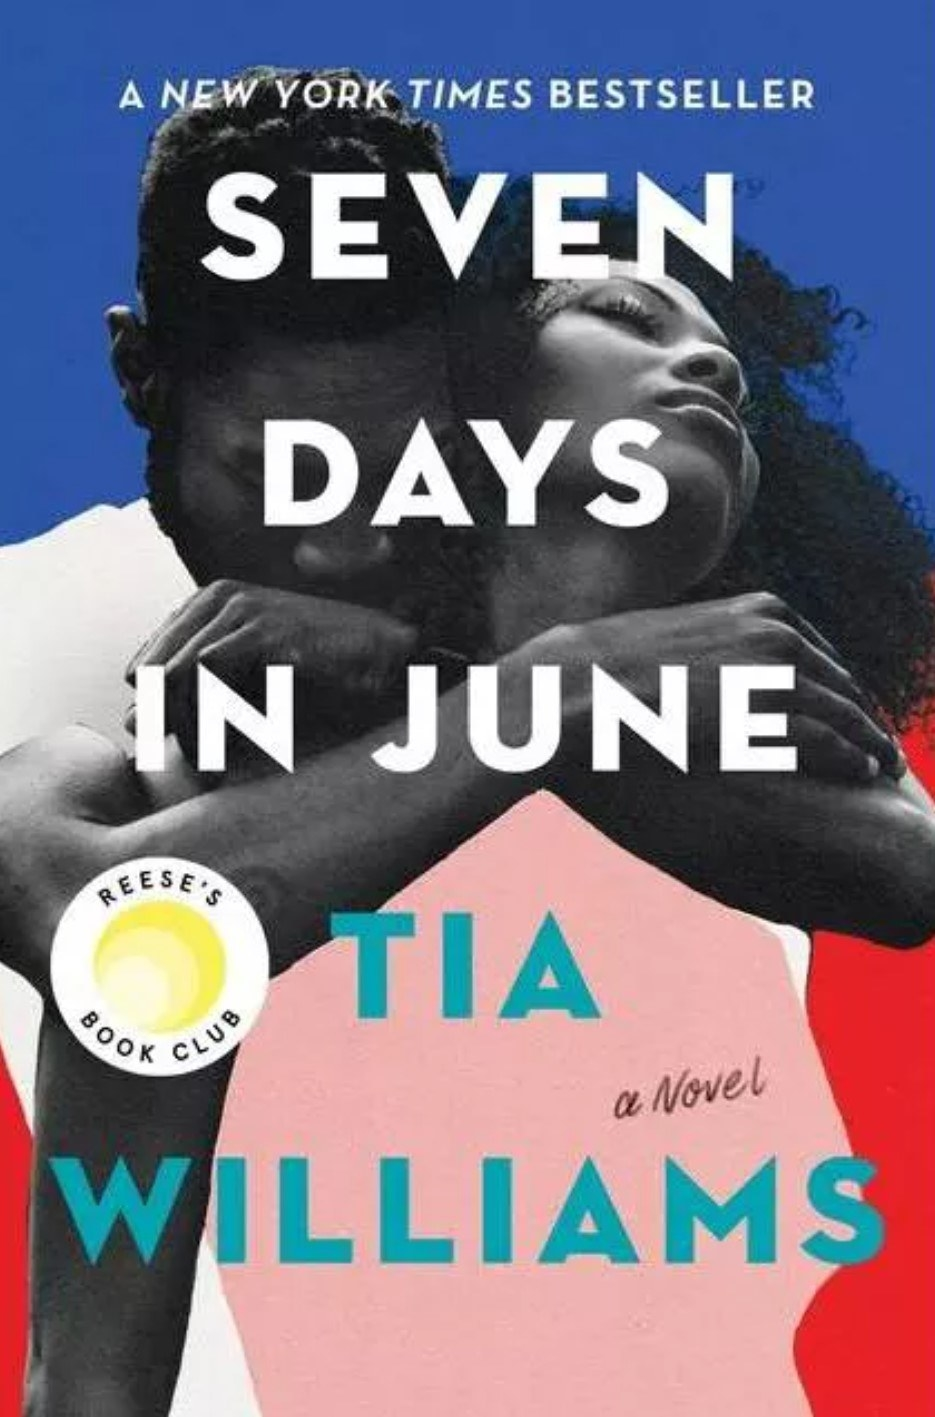 The cover of Seven Days In June by Tia Williams